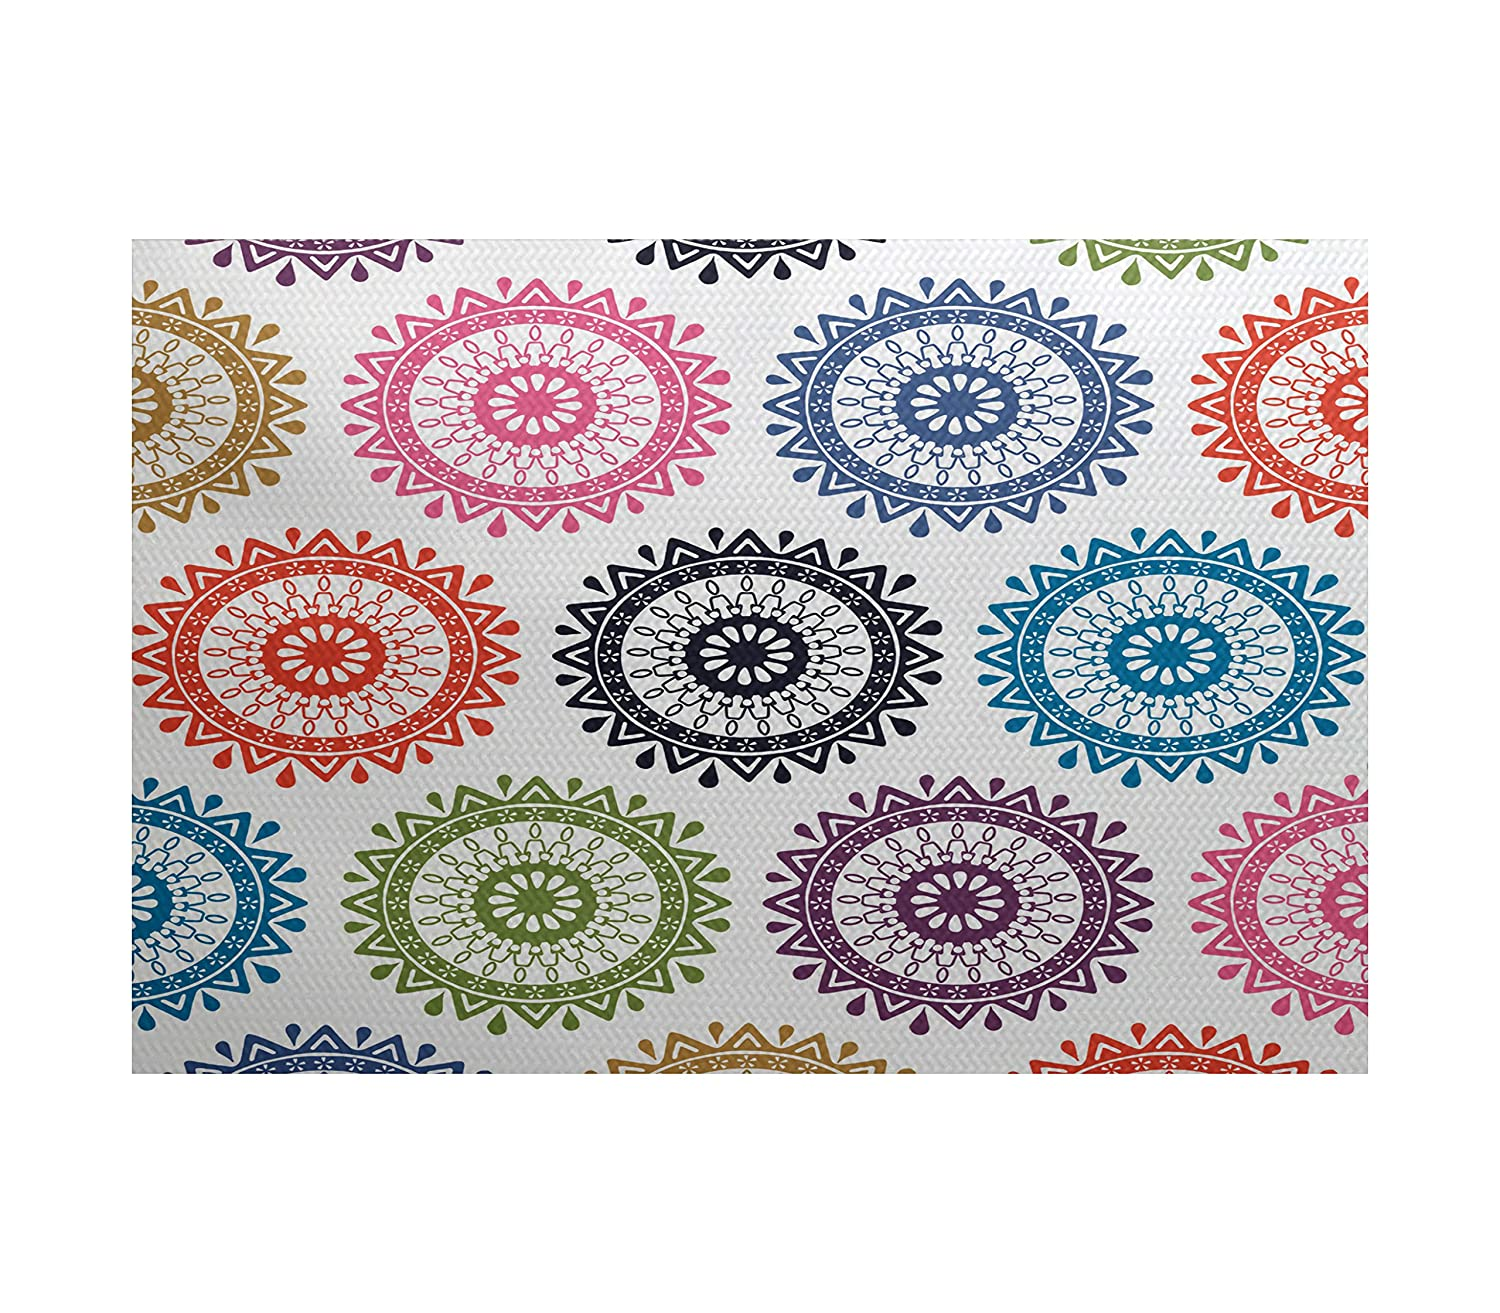 E by design RGN549BL14-23 Groovy, Geometric Print Indoor/Outdoor Rug, 2 x 3, Blue